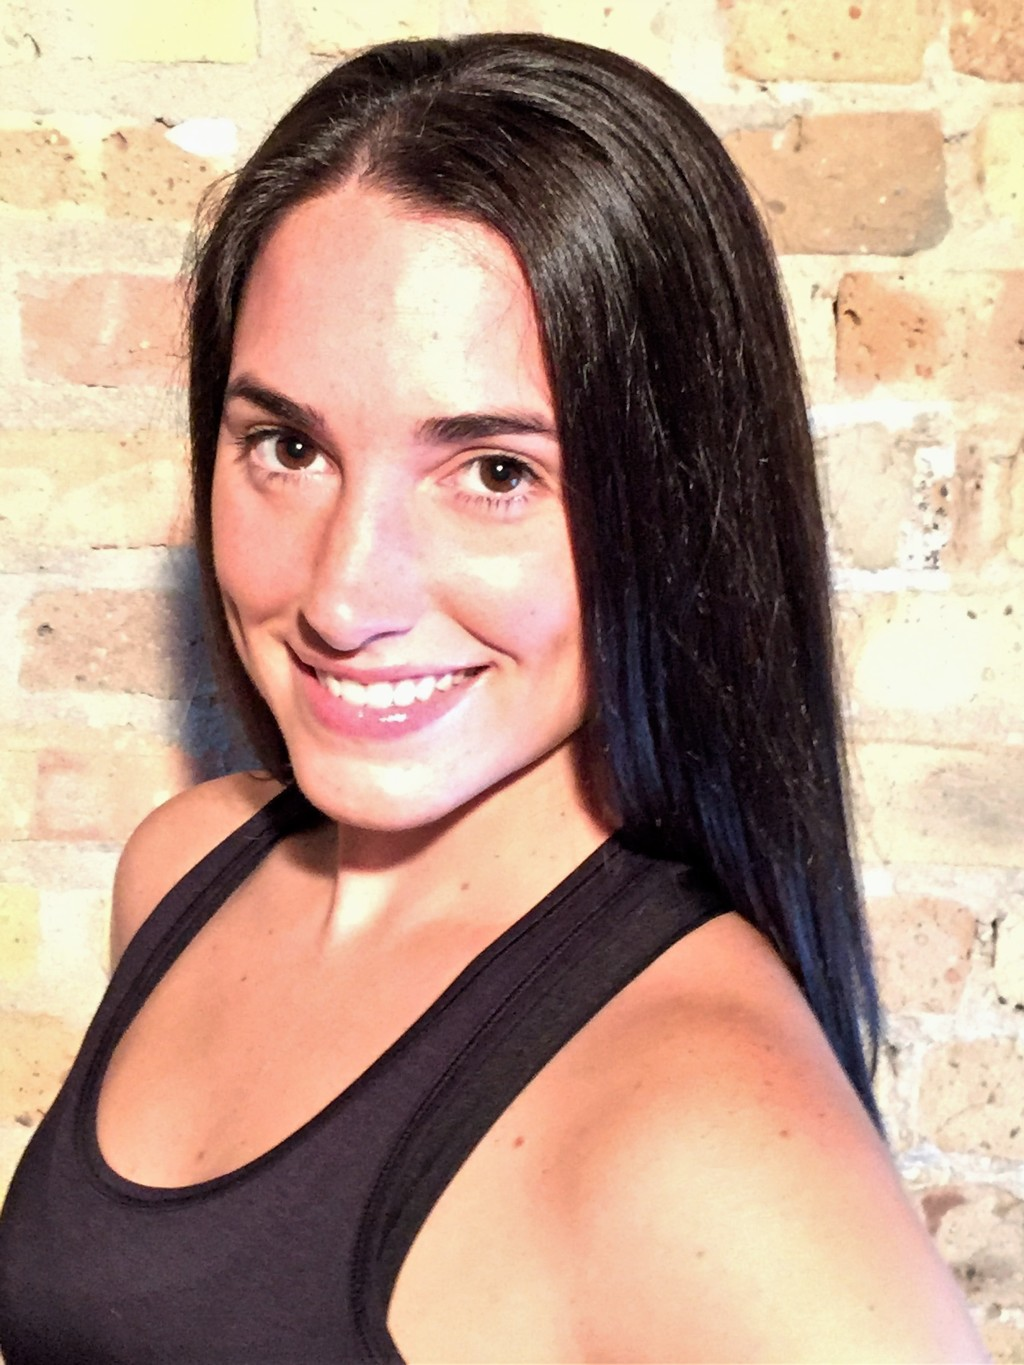 Personal Trainer Chicago, Illinois - Noelle Thezan